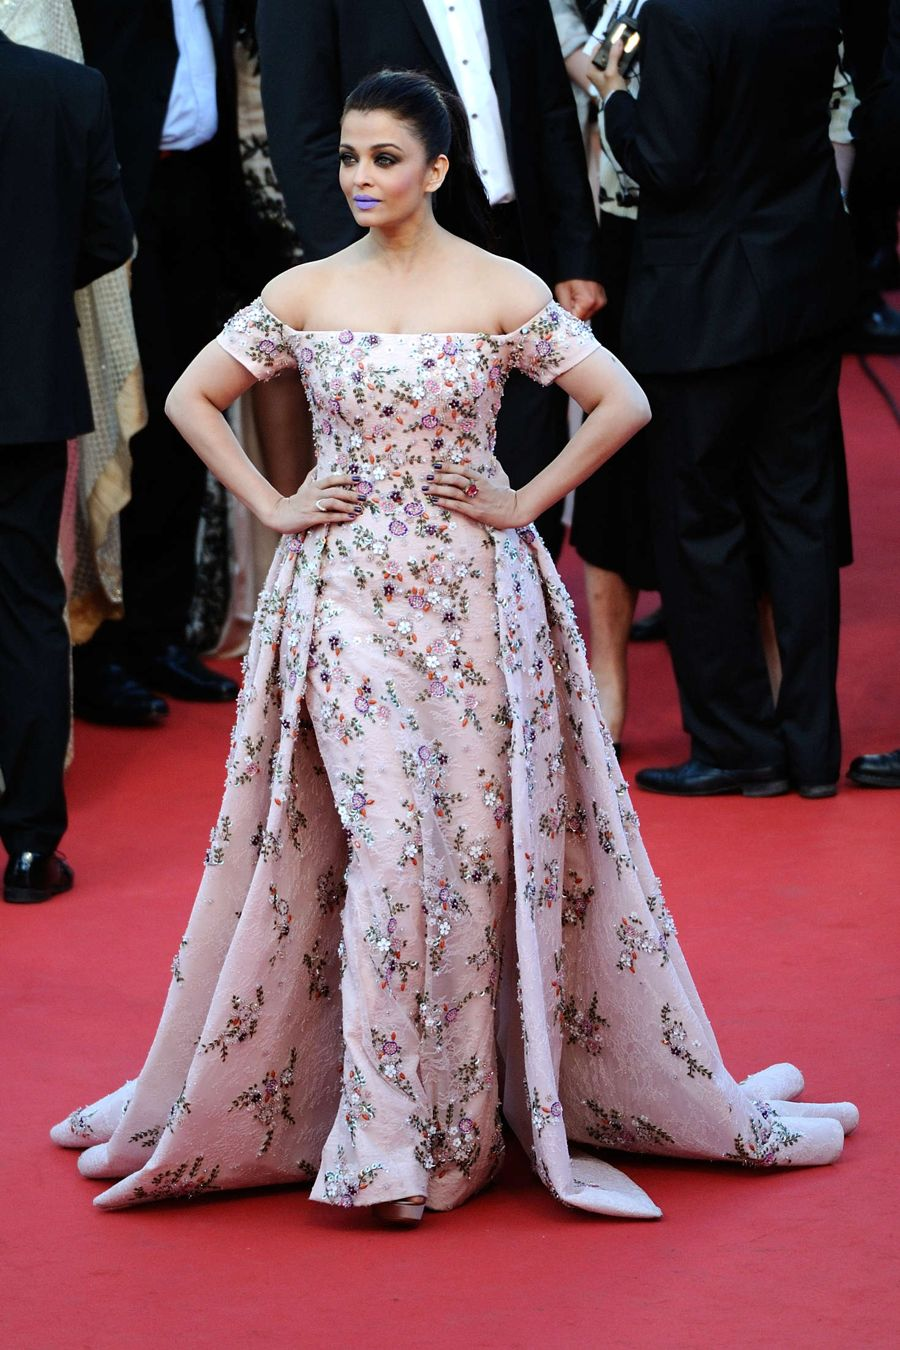 Aishwarya Rai - 'From the Land of Moon' Premiere Cannes